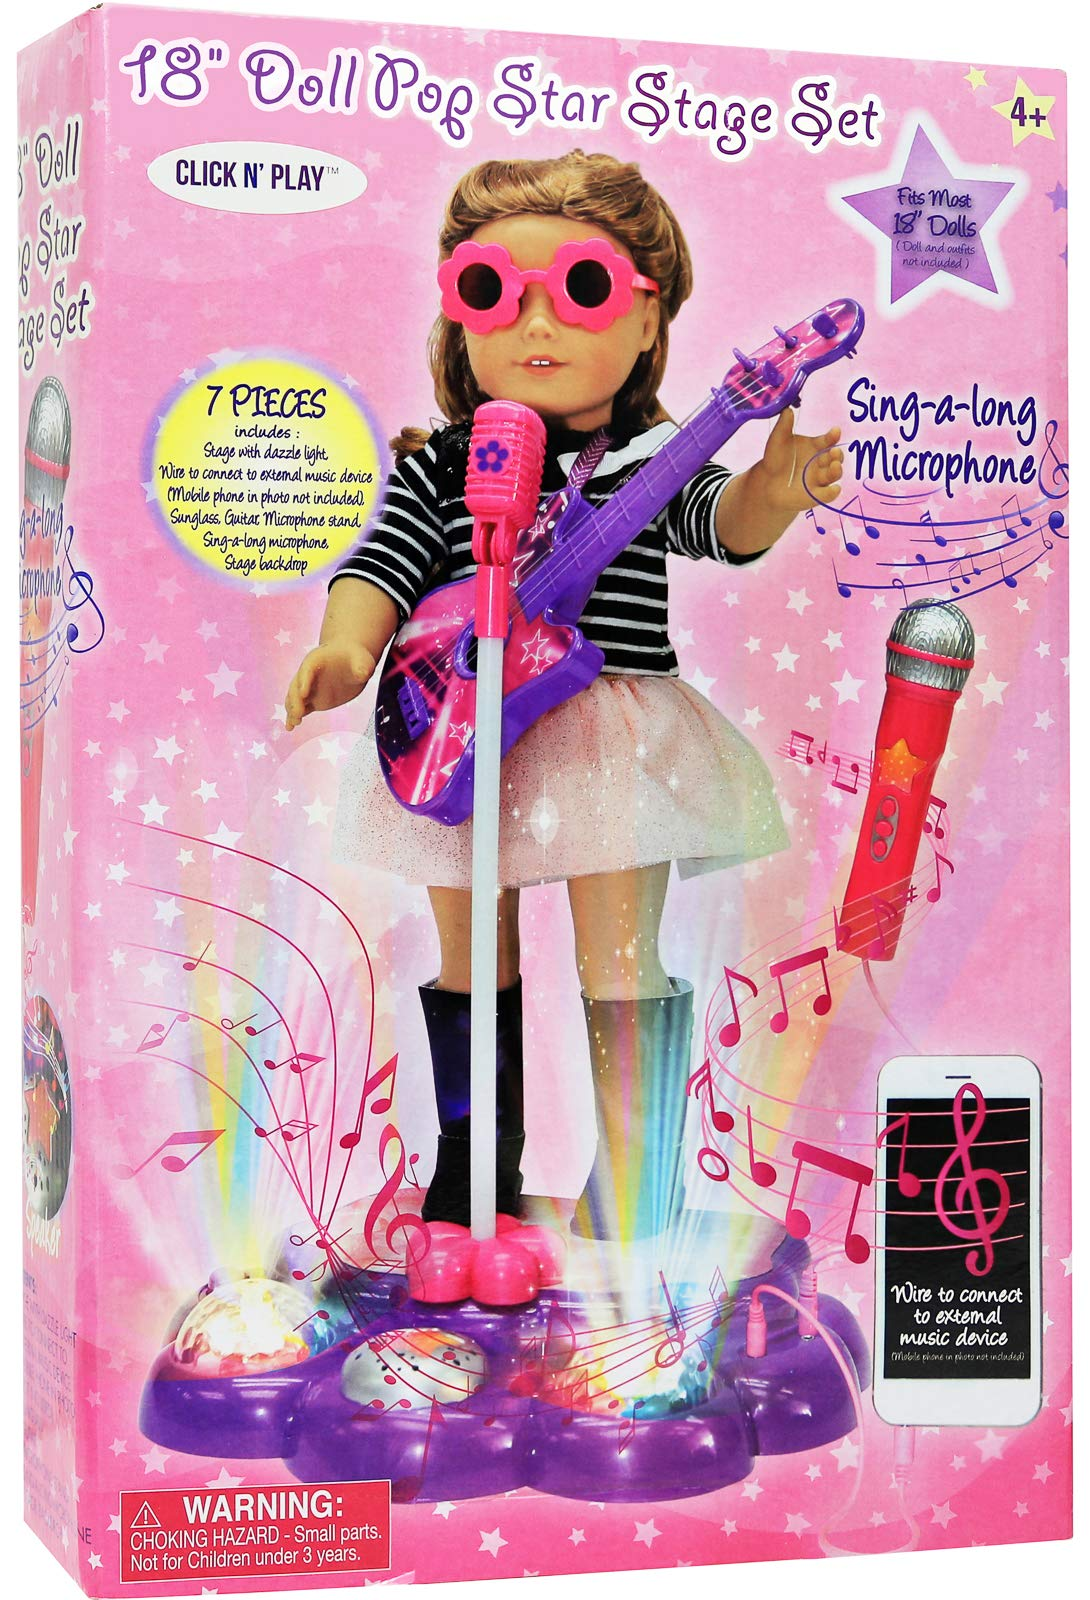 Kids Doll Interacting Toy Karaoke Machine Performance Stage Disco LED Lights, Guitar, Microphone with Stand Sunglasses Smartphone MP3 Connectivity Sing-Along Perfect For 18 inch American Girl Dolls by Click N' Play (Image #4)